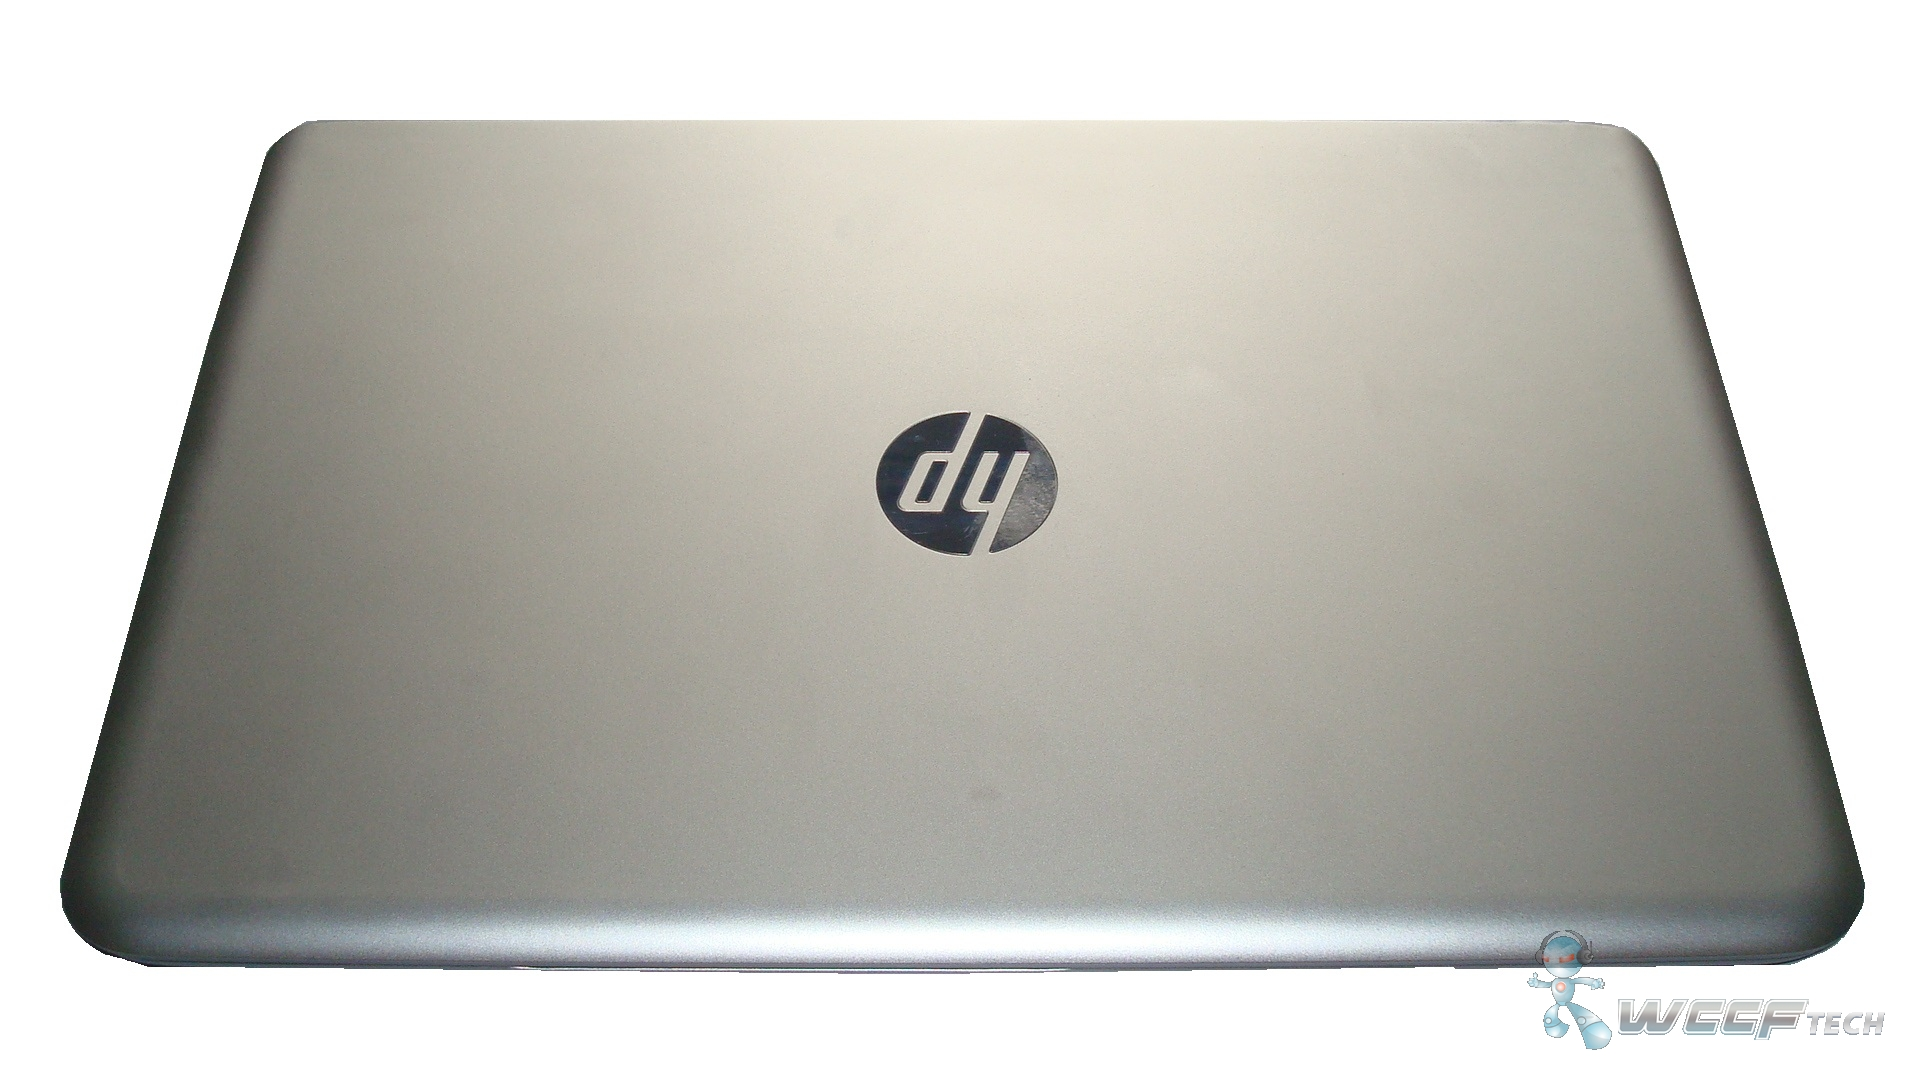 Download HP Envy 15 TouchSmart 15 j000 Haswell Notebook Review 1920x1080